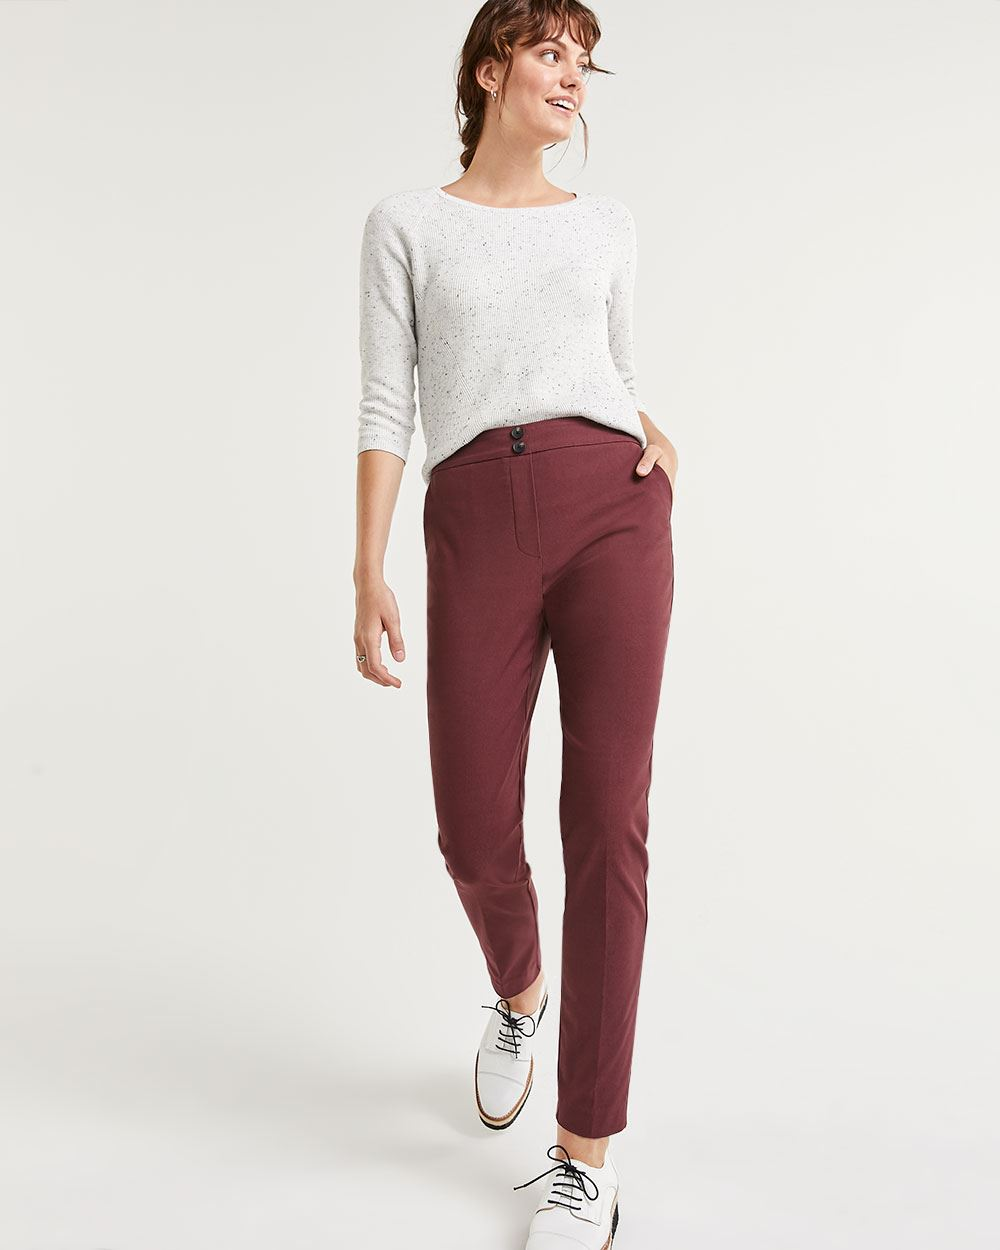 Super High Rise Slim Pull On Pants The Iconic